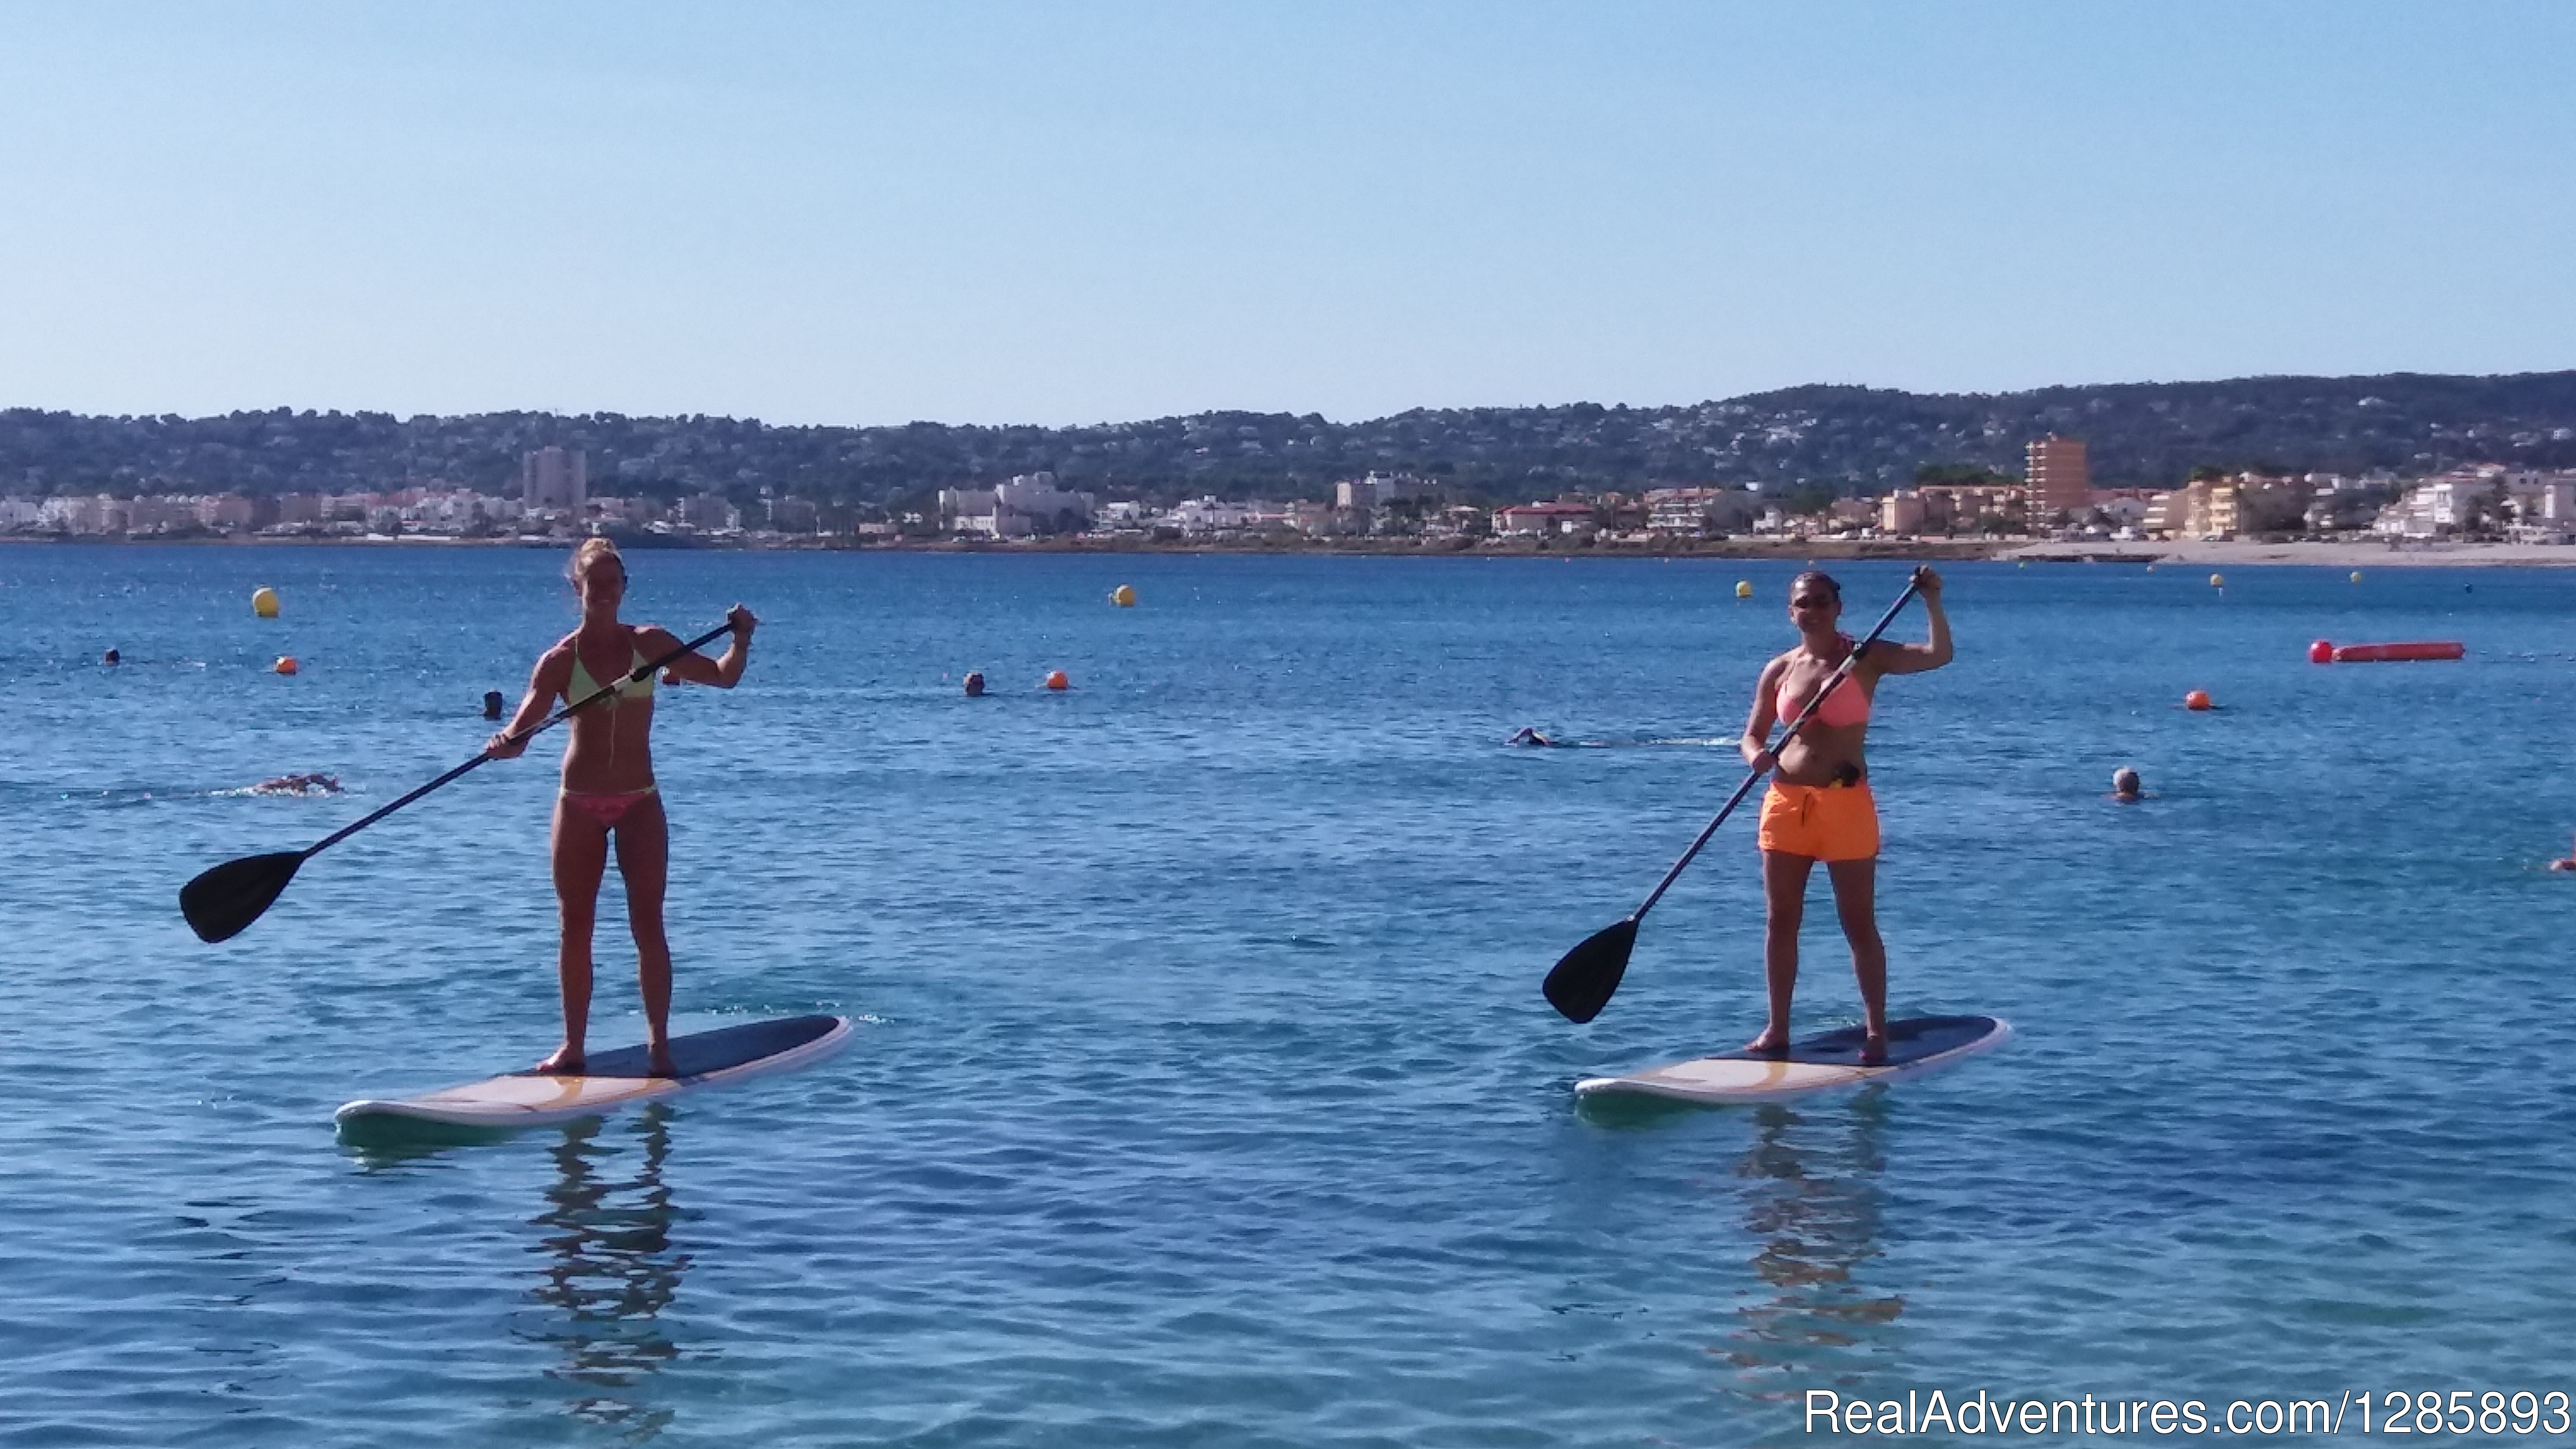 Stand Up Paddle Boarding on crystal clear waters